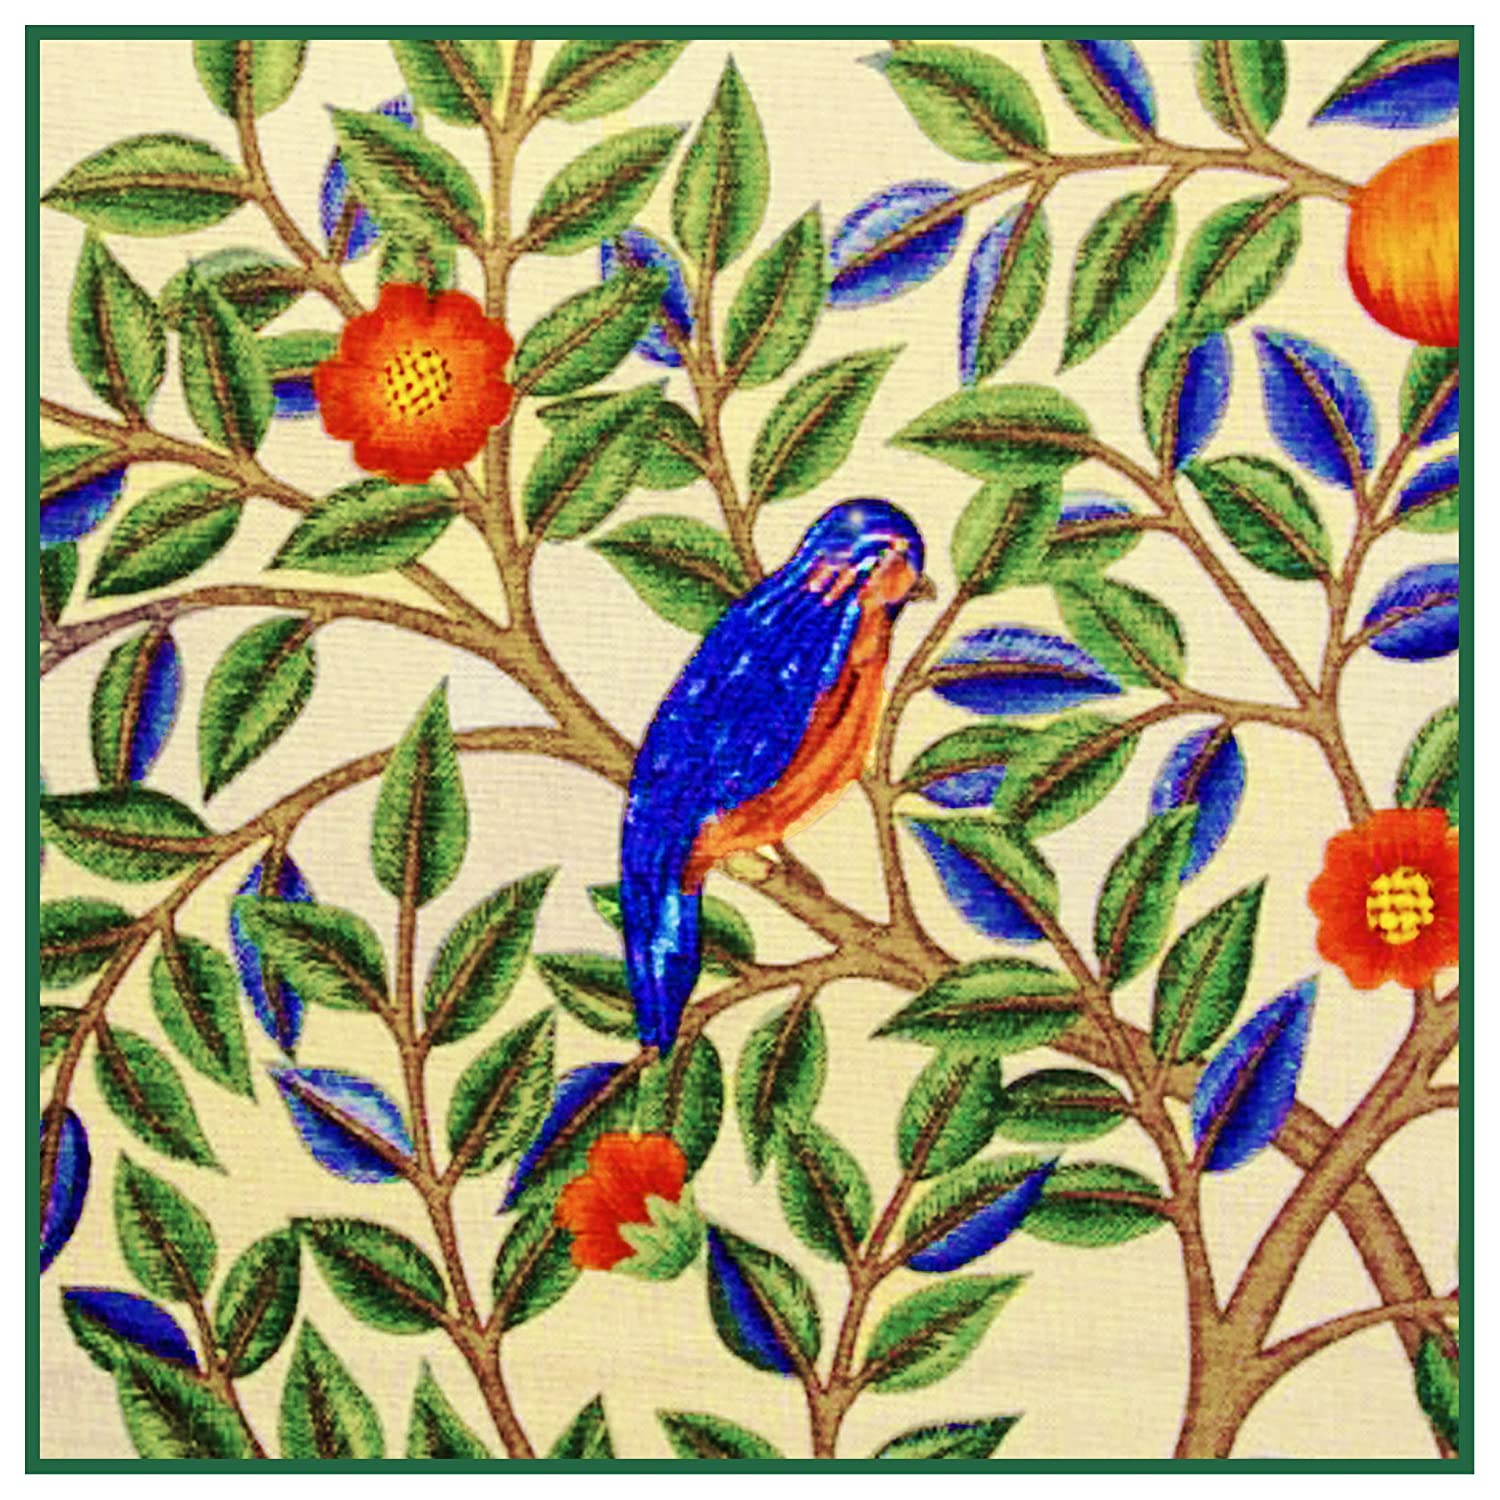 Orenco Originals Kelmscott Bird by William Morris Counted Cross Stitch Pattern